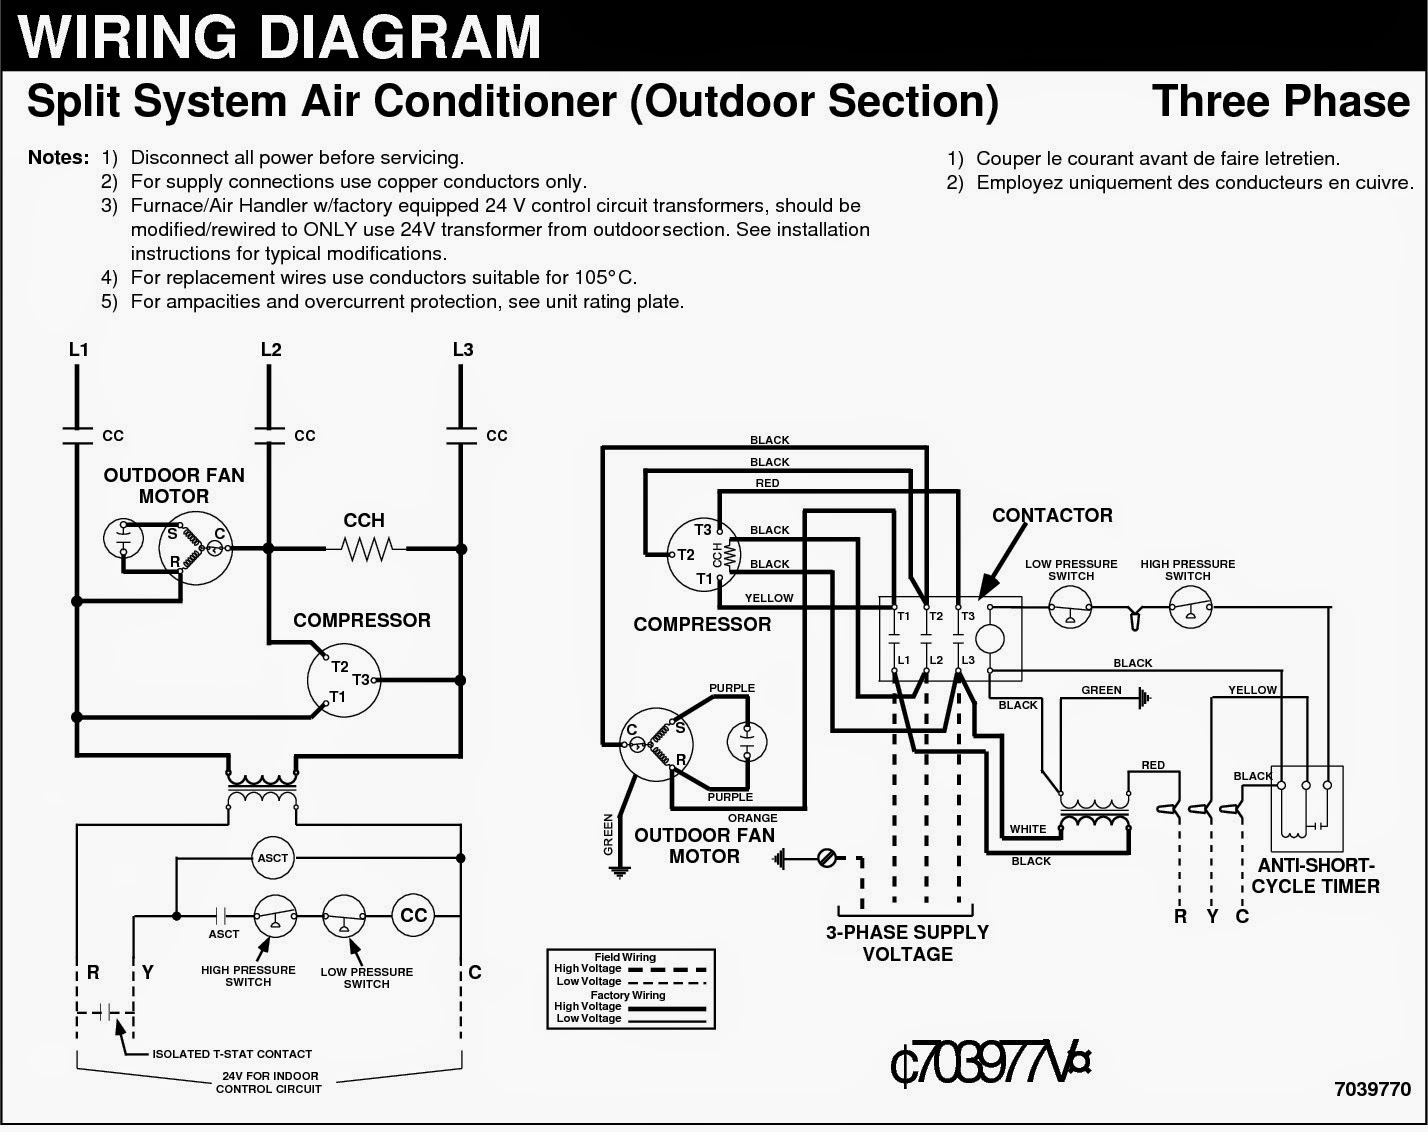 3+phase 3 phase power wiring diagram 208 3 phase motor wiring \u2022 free 3 phase power wiring diagram at gsmx.co